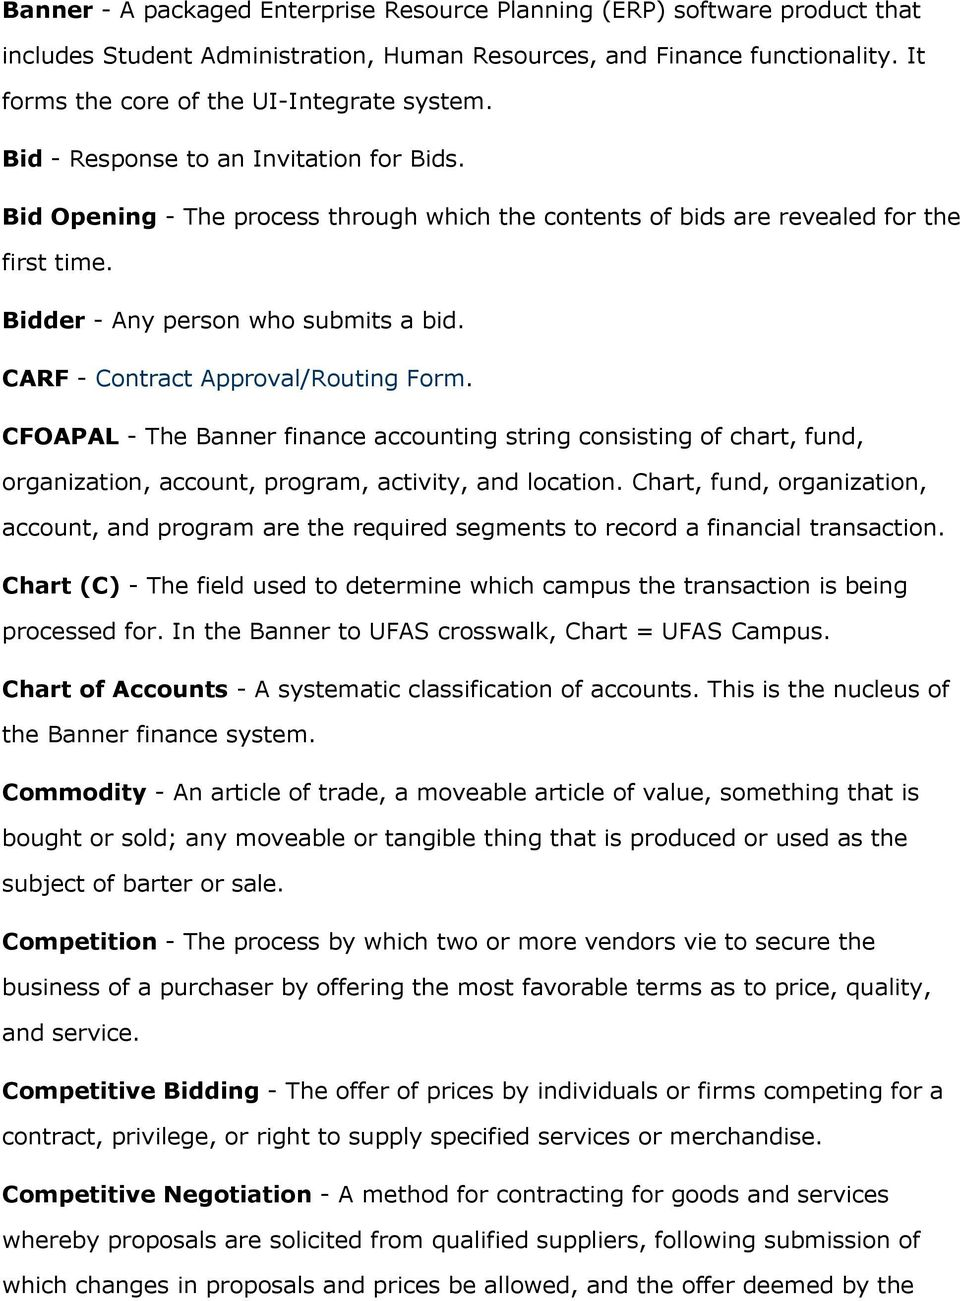 CARF - Contract Approval/Routing Form. CFOAPAL - The Banner finance accounting string consisting of chart, fund, organization, account, program, activity, and location.